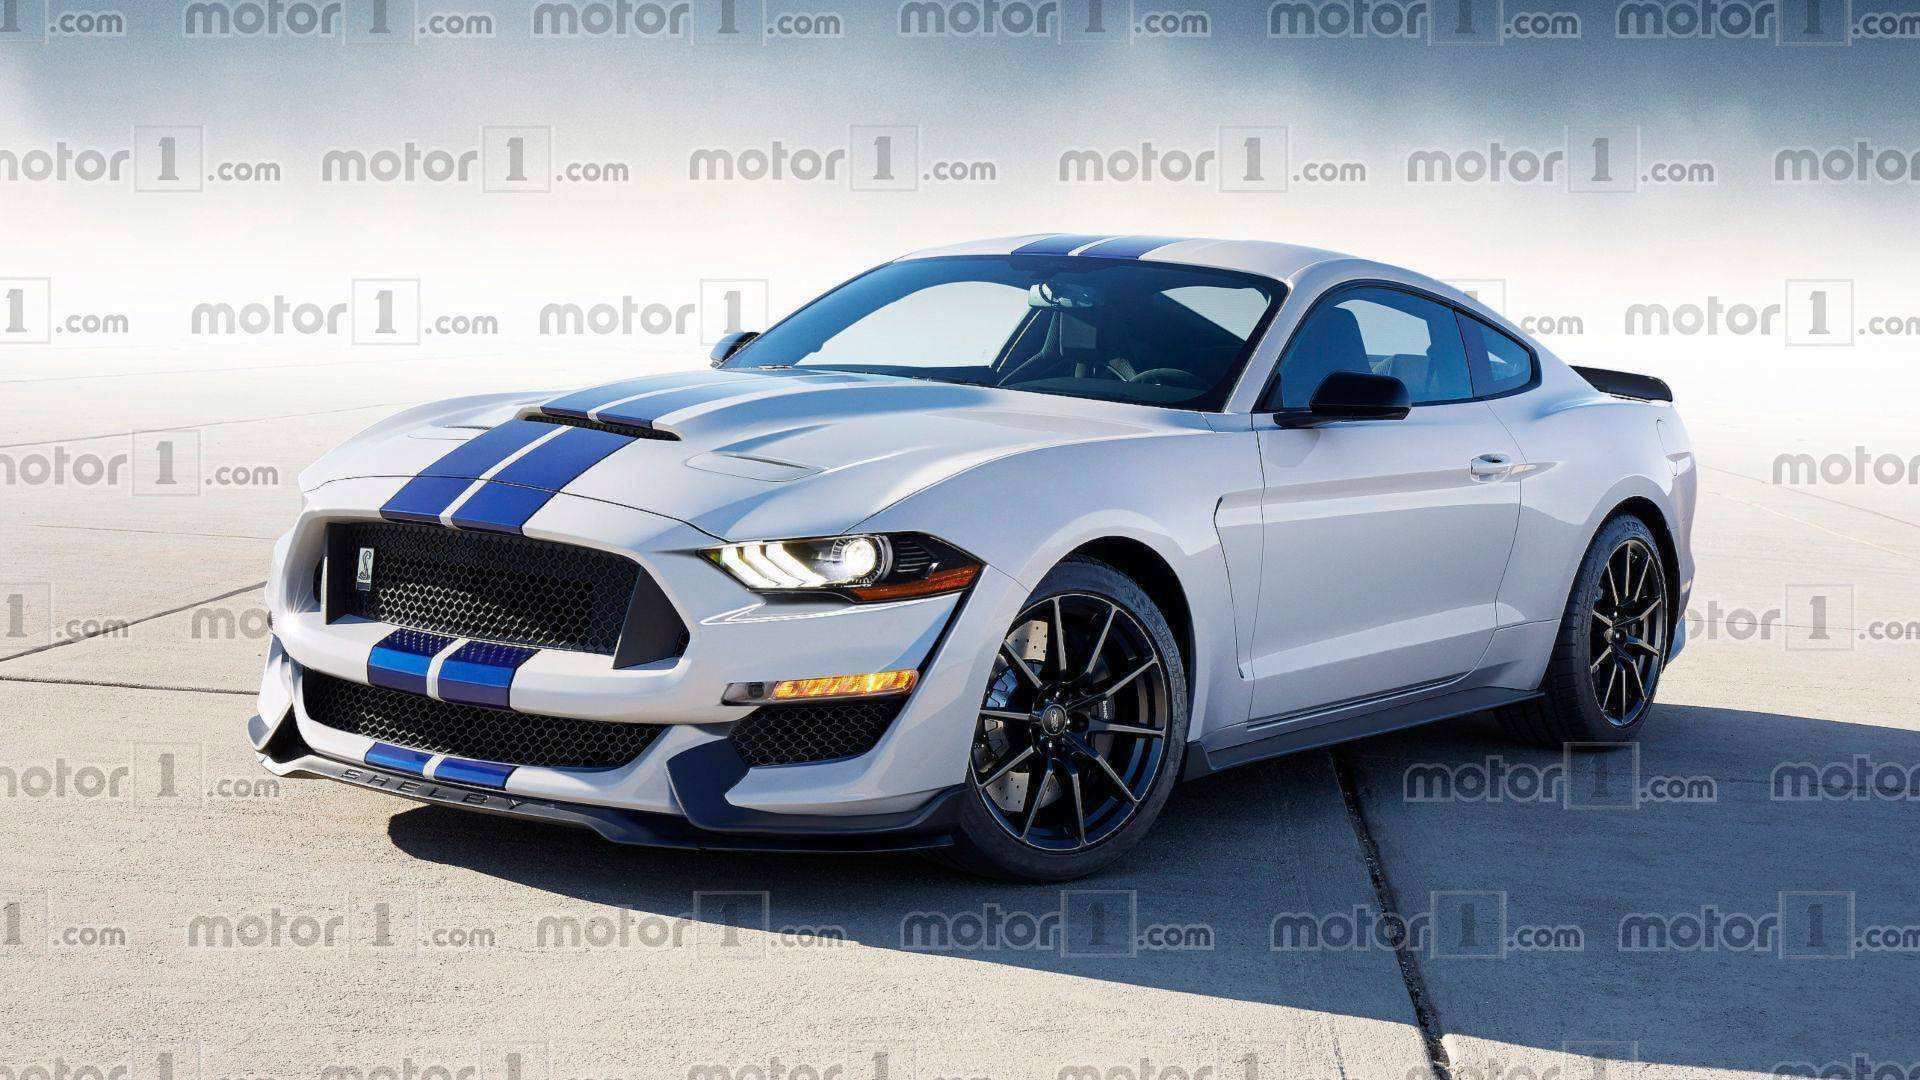 98 A Ford Mustang Gt500 Shelby 2020 Configurations